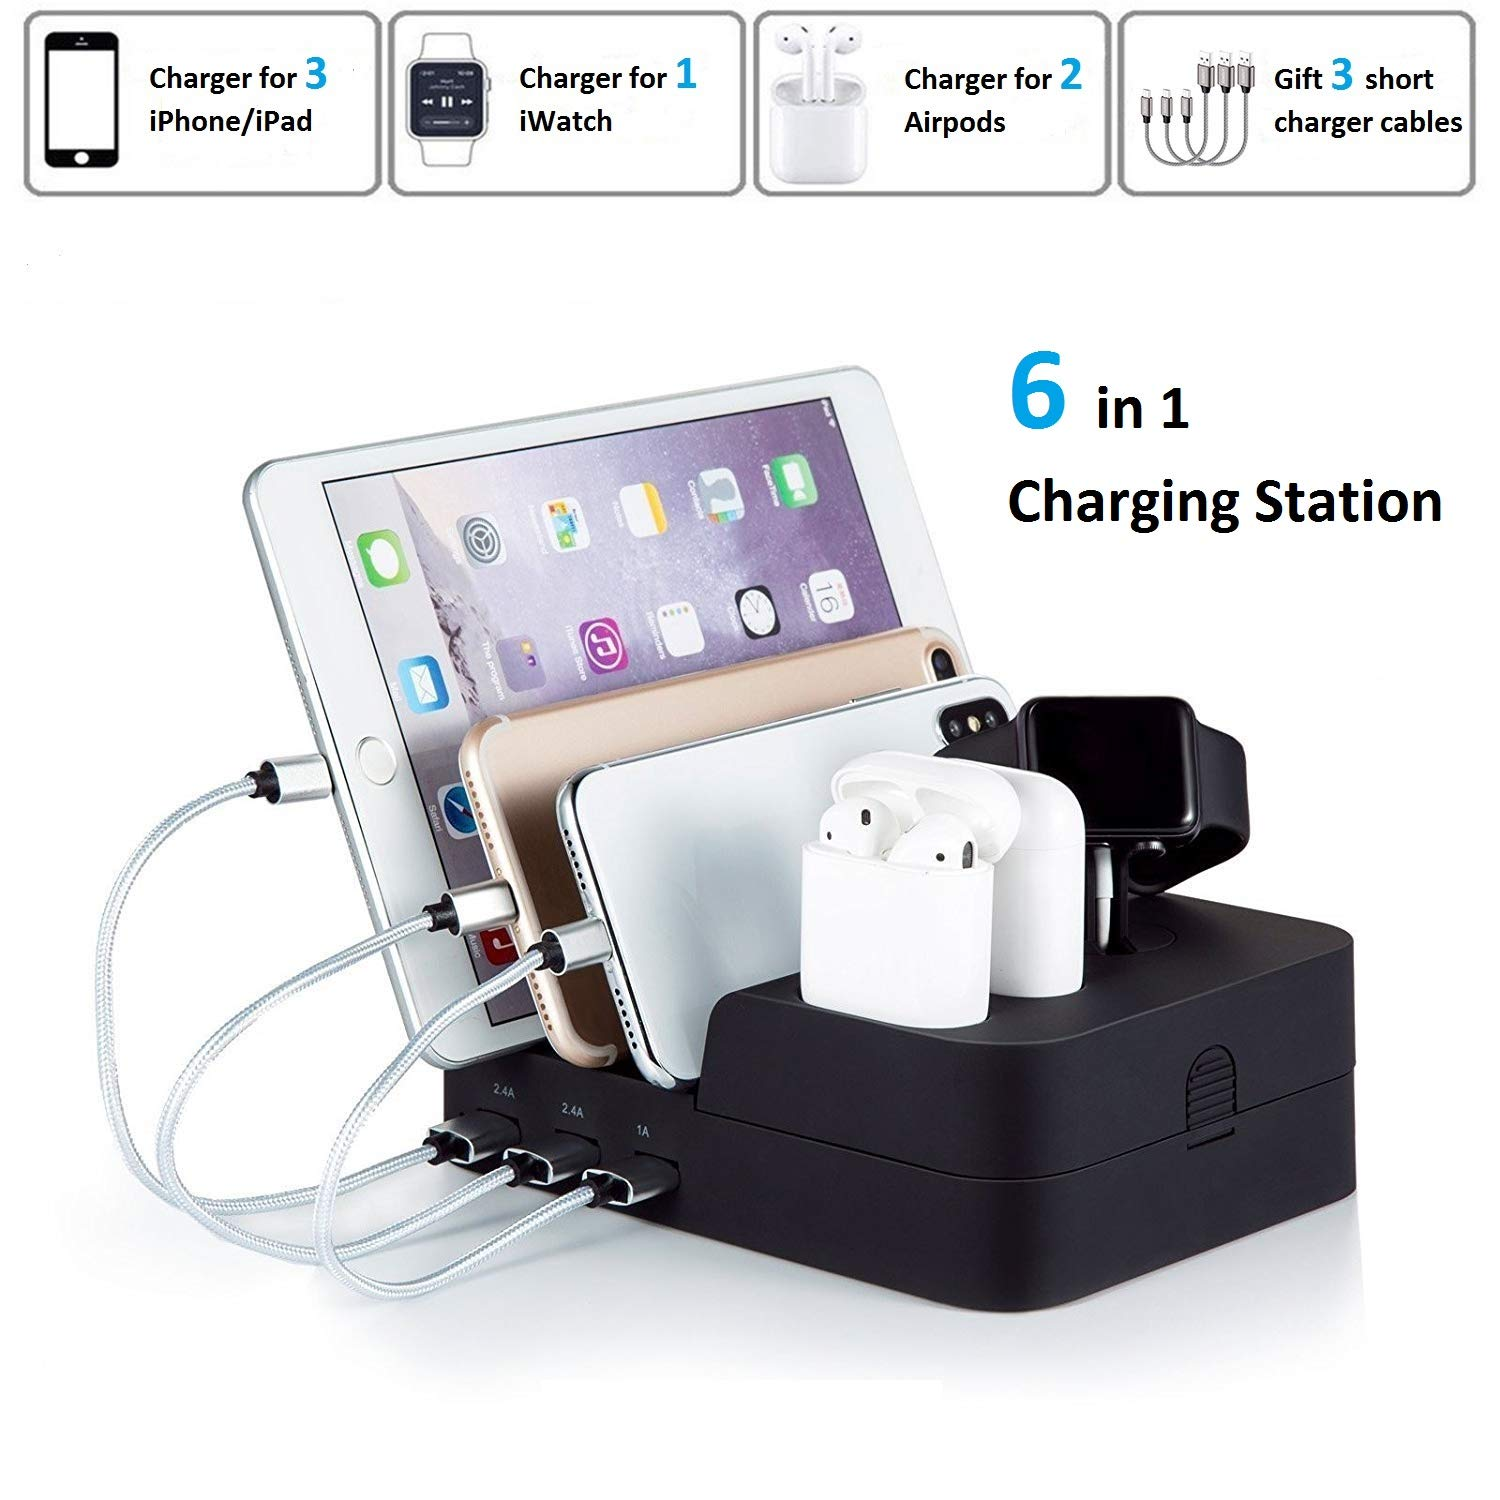 KeyEntre 6 Port USB Charging Station Multi Device USB Charging Dock Station HUB Desktop Charger Stand Organizer Compatible for iPhone ipad Airpods iwatch Kindle Tablet Multiple Devices, Black